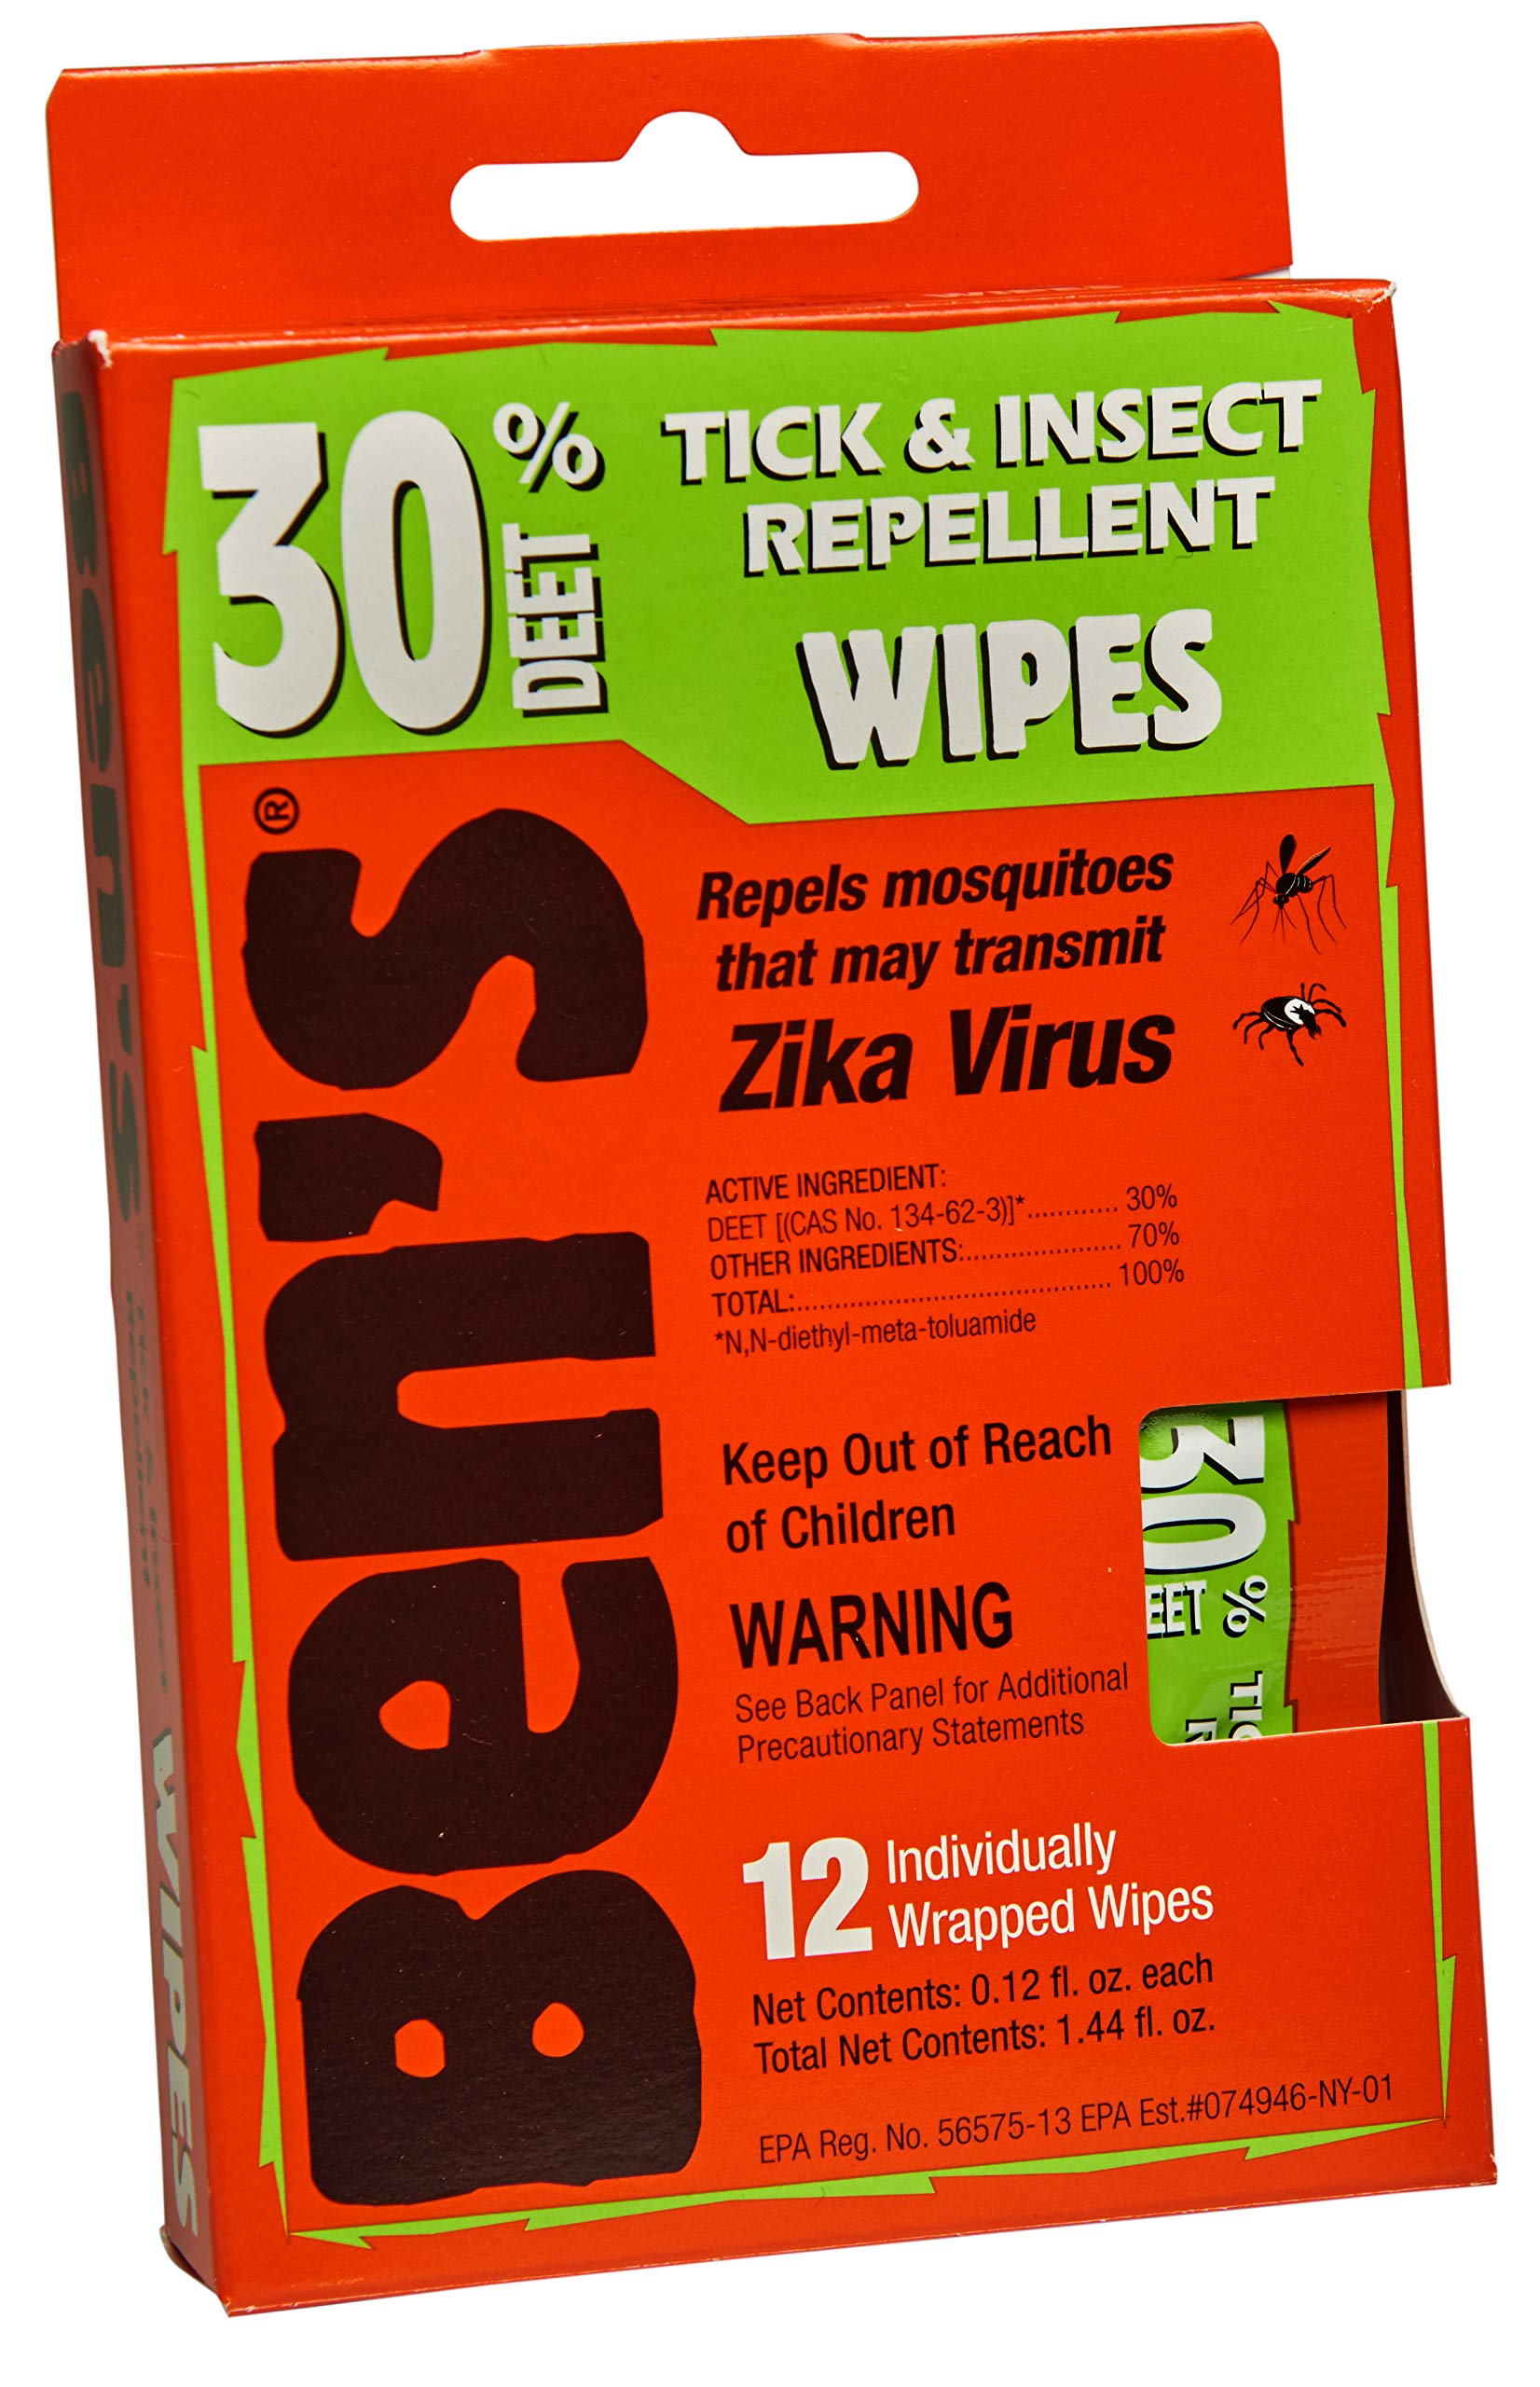 Ben's 30% DEET Mosquito, Tick and Insect Repellent Wipes, Pack of 48 by Ben's